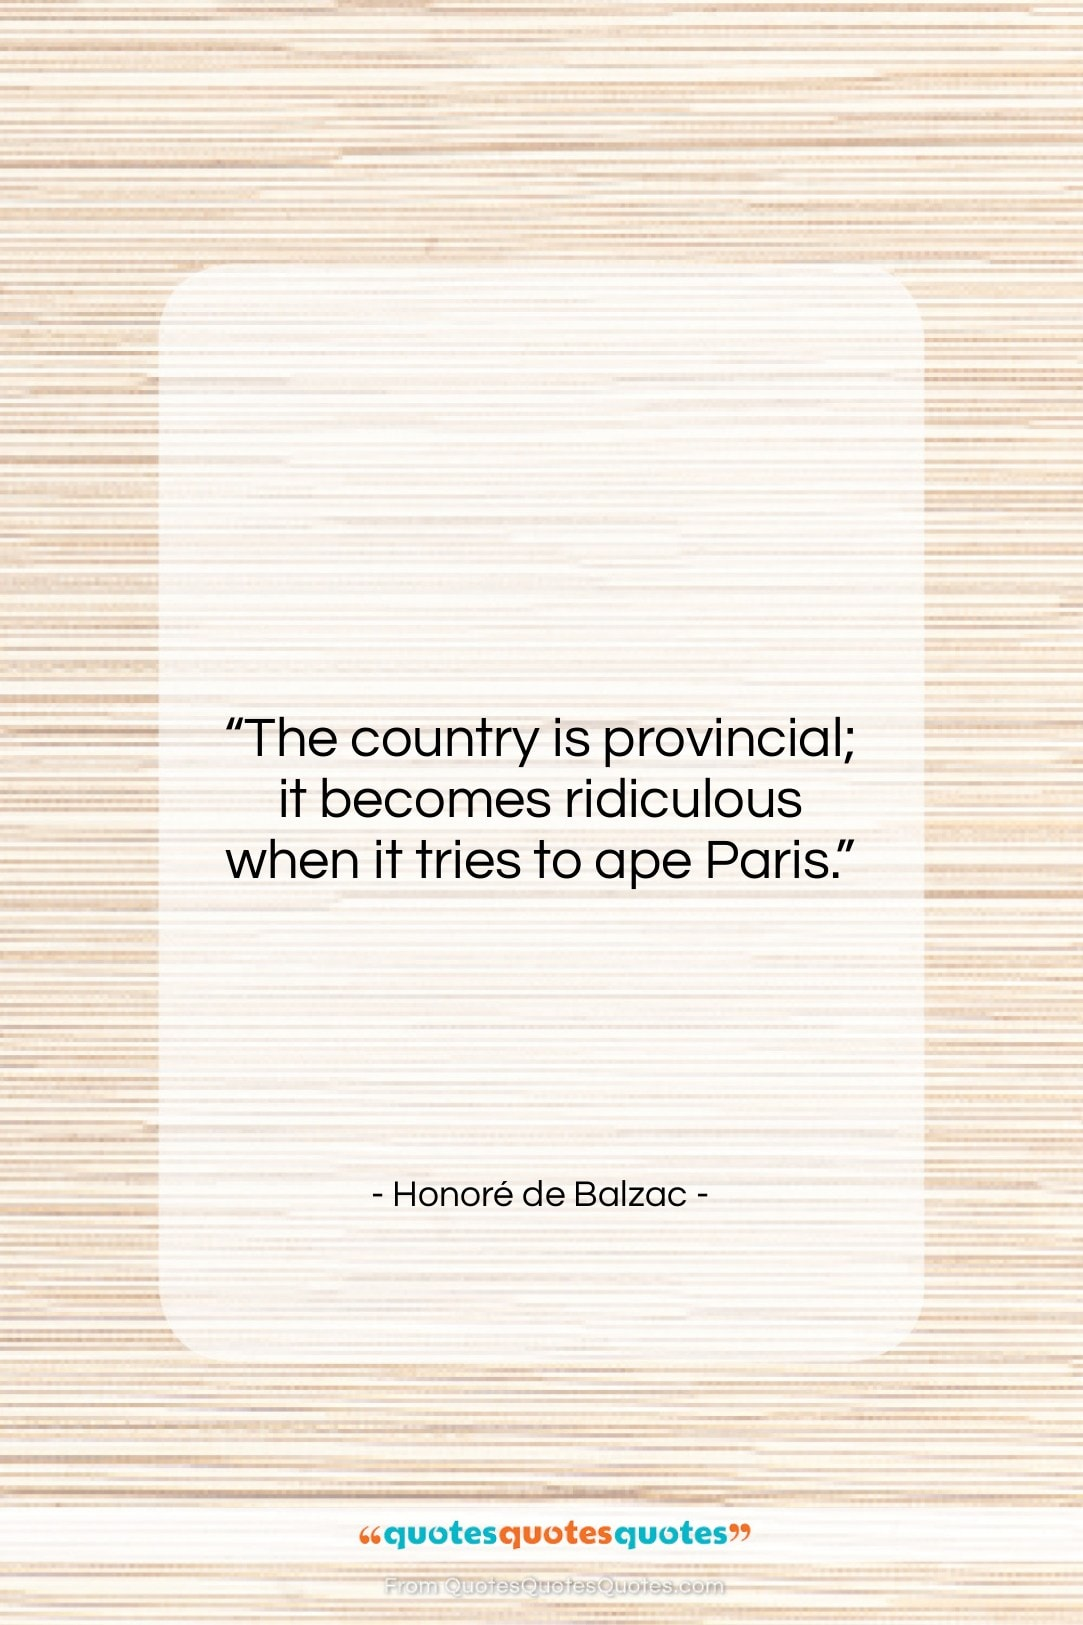 """Honoré de Balzac quote: """"The country is provincial; it becomes ridiculous…""""- at QuotesQuotesQuotes.com"""